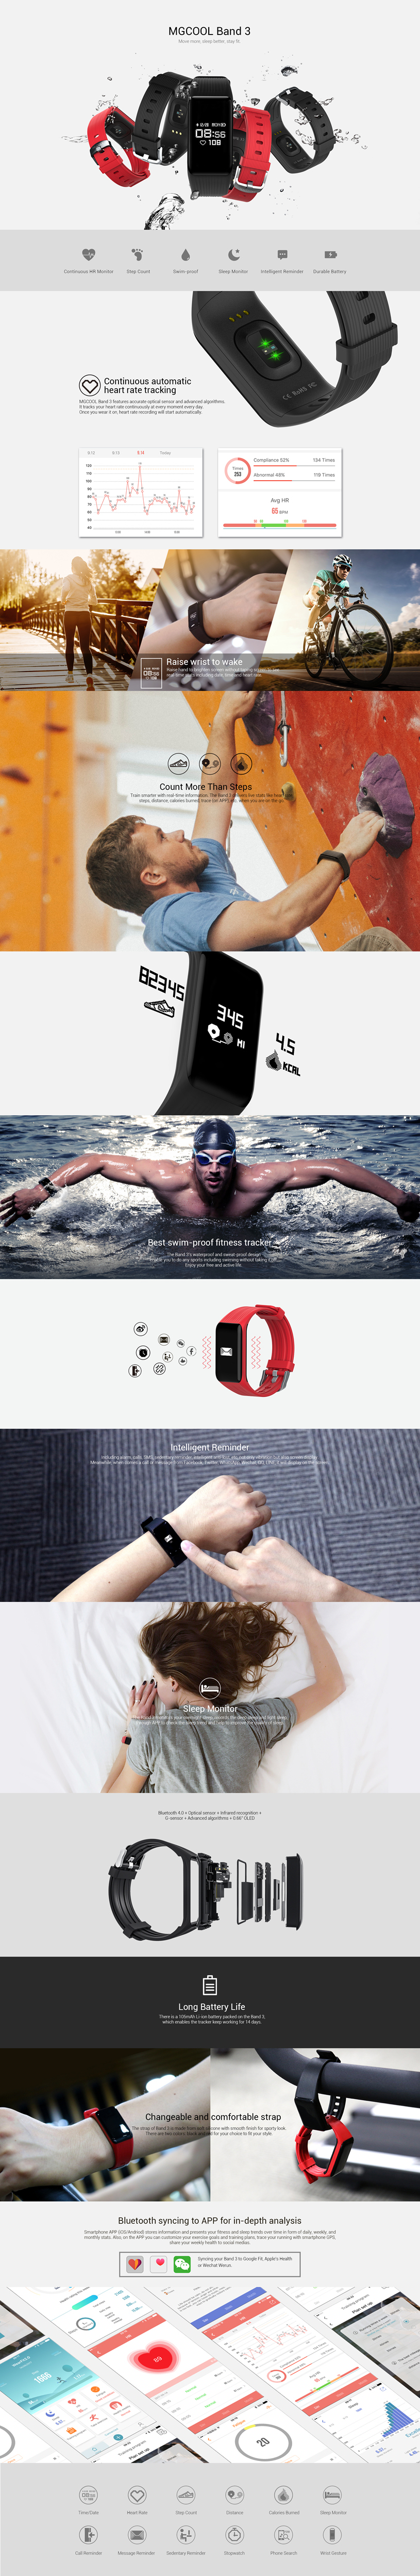 MGCOOL Band 3 0.66inch OLED Heart Rate Monitor Pedometer Smart Bracelet For iphone X Samsung Xiaomi